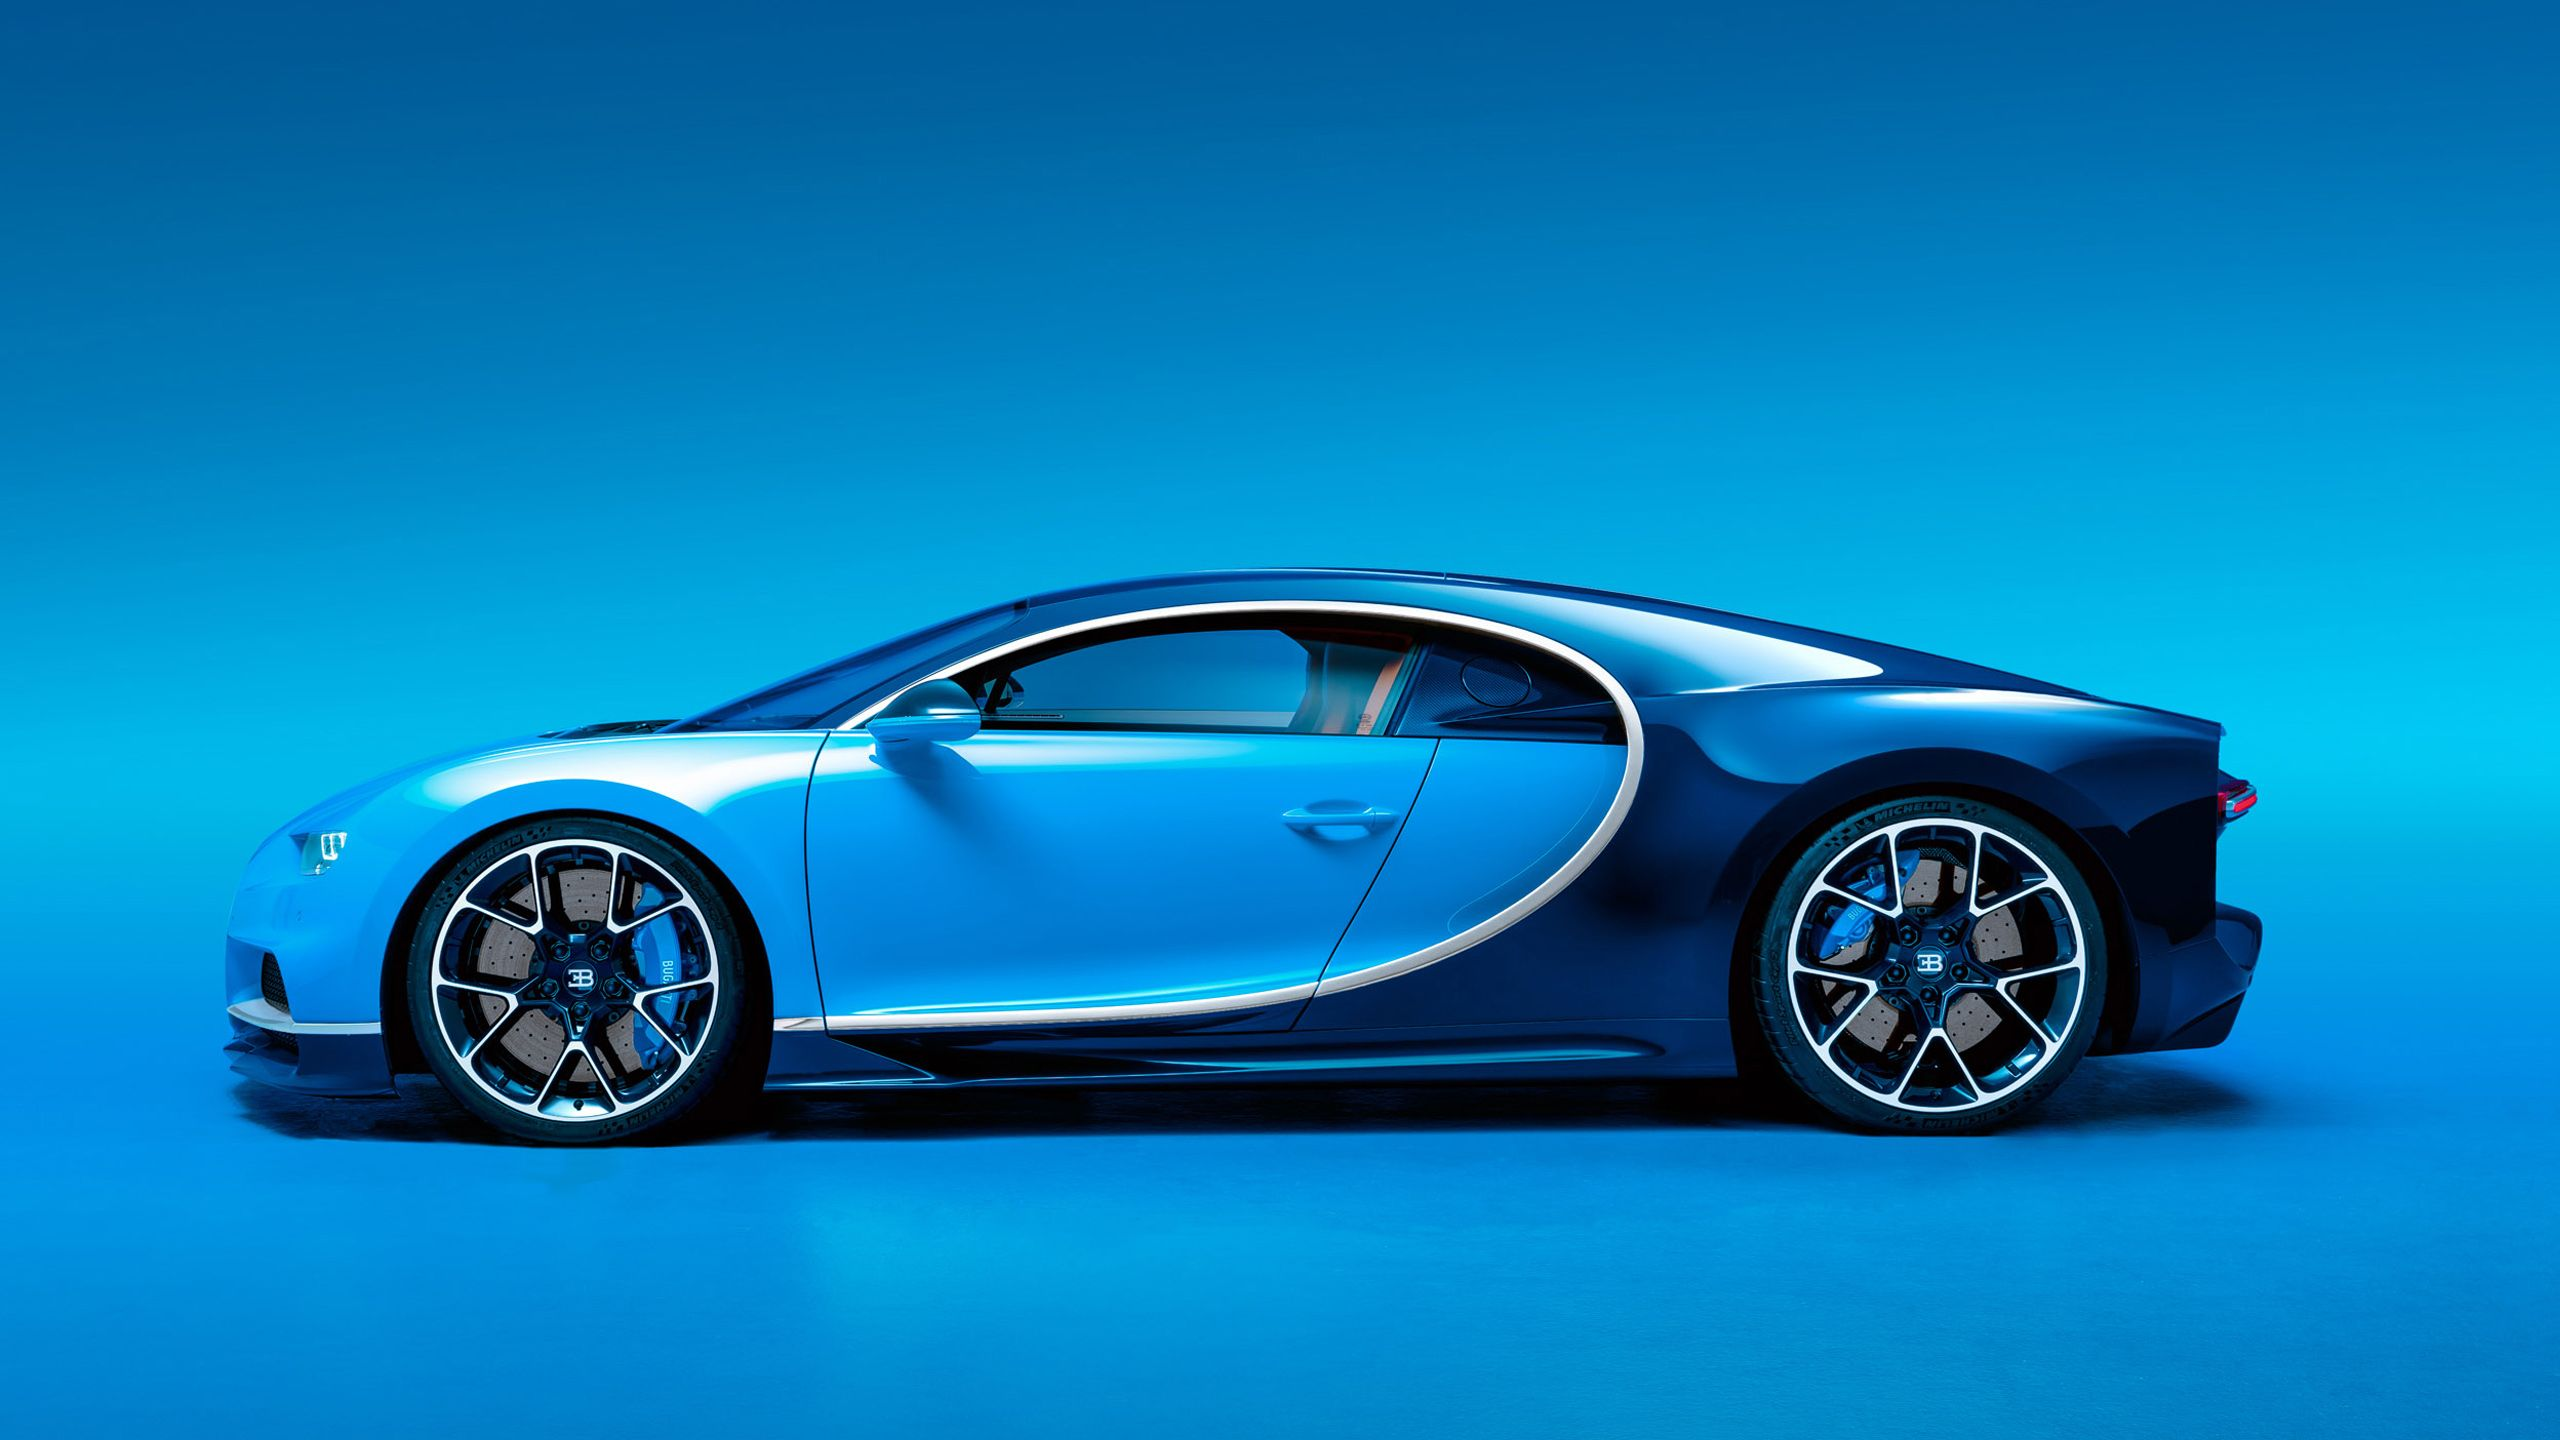 98b5fab65c179953858597777c7c9846 Surprising Bugatti Veyron Price In Bahrain Cars Trend